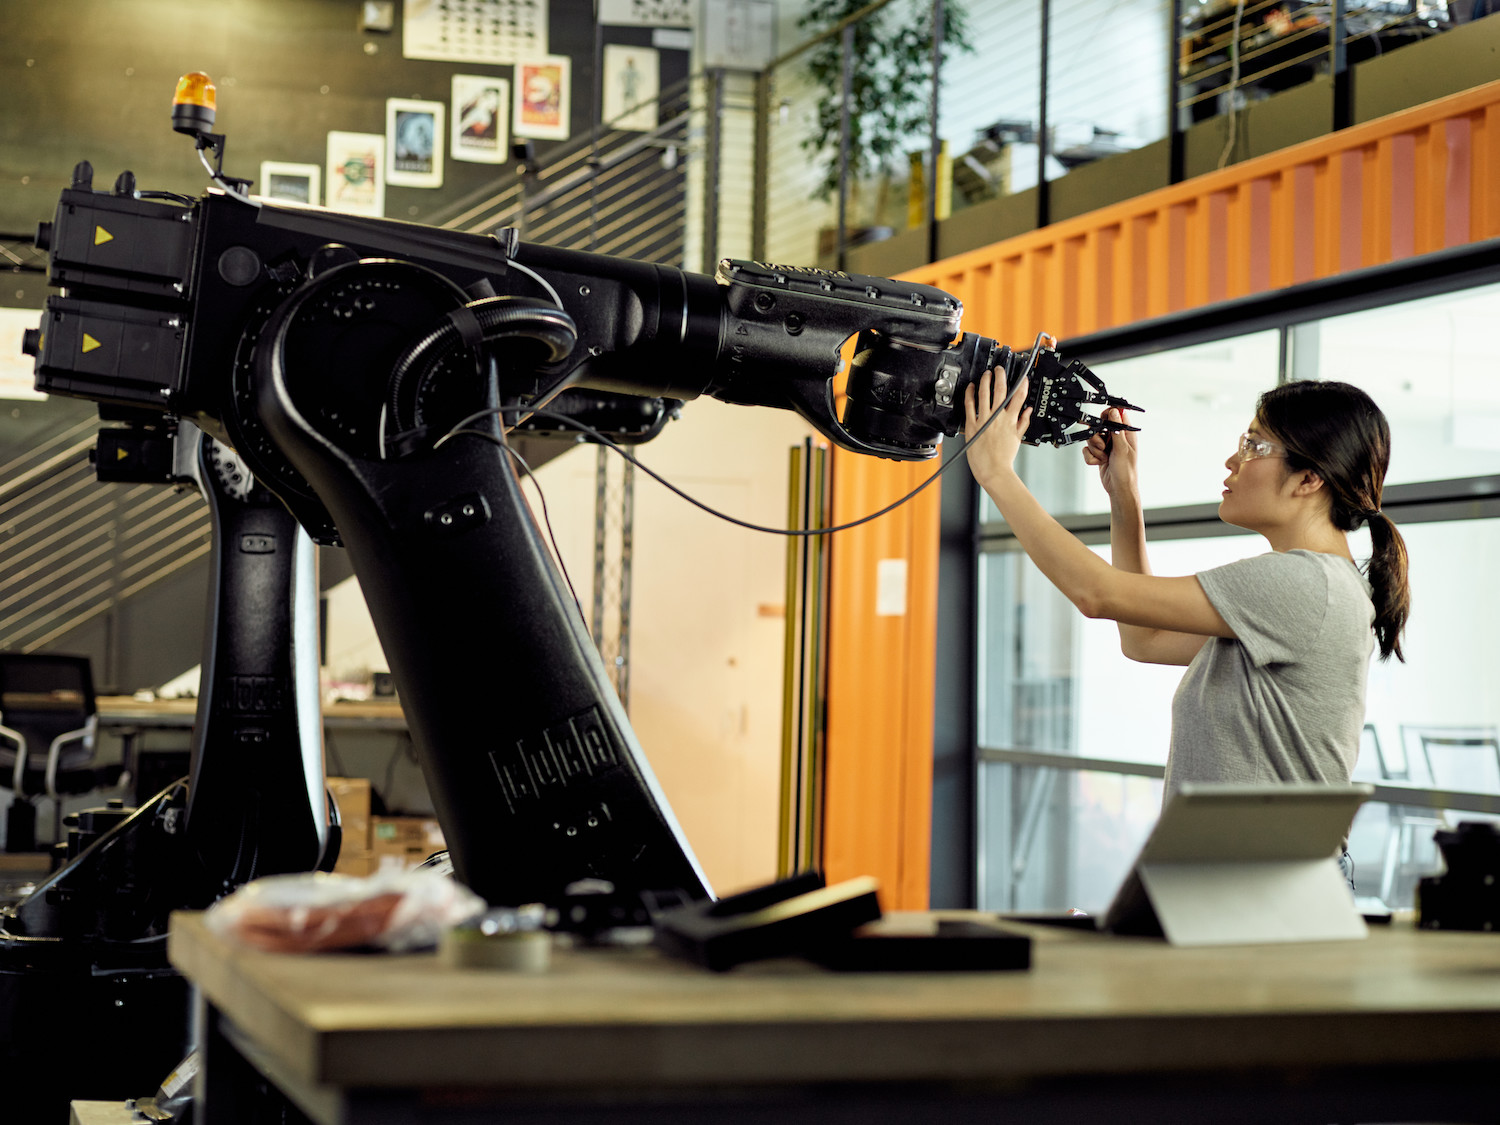 A woman in a lab space touching a large robotic arm.